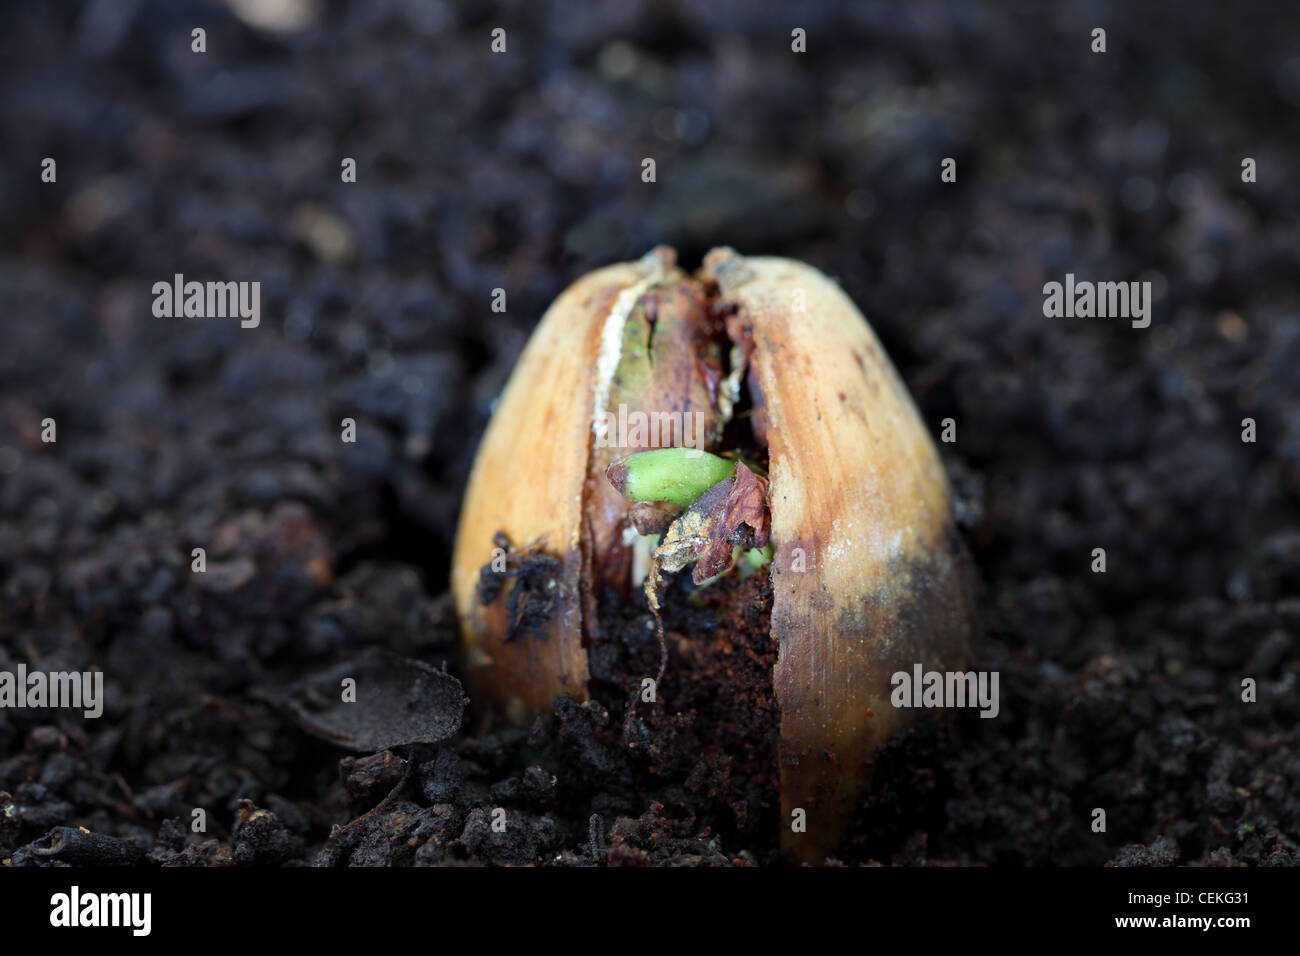 Sprouting Acorn From a Pedunculate Oak Tree Quercus robur UK - Stock Image